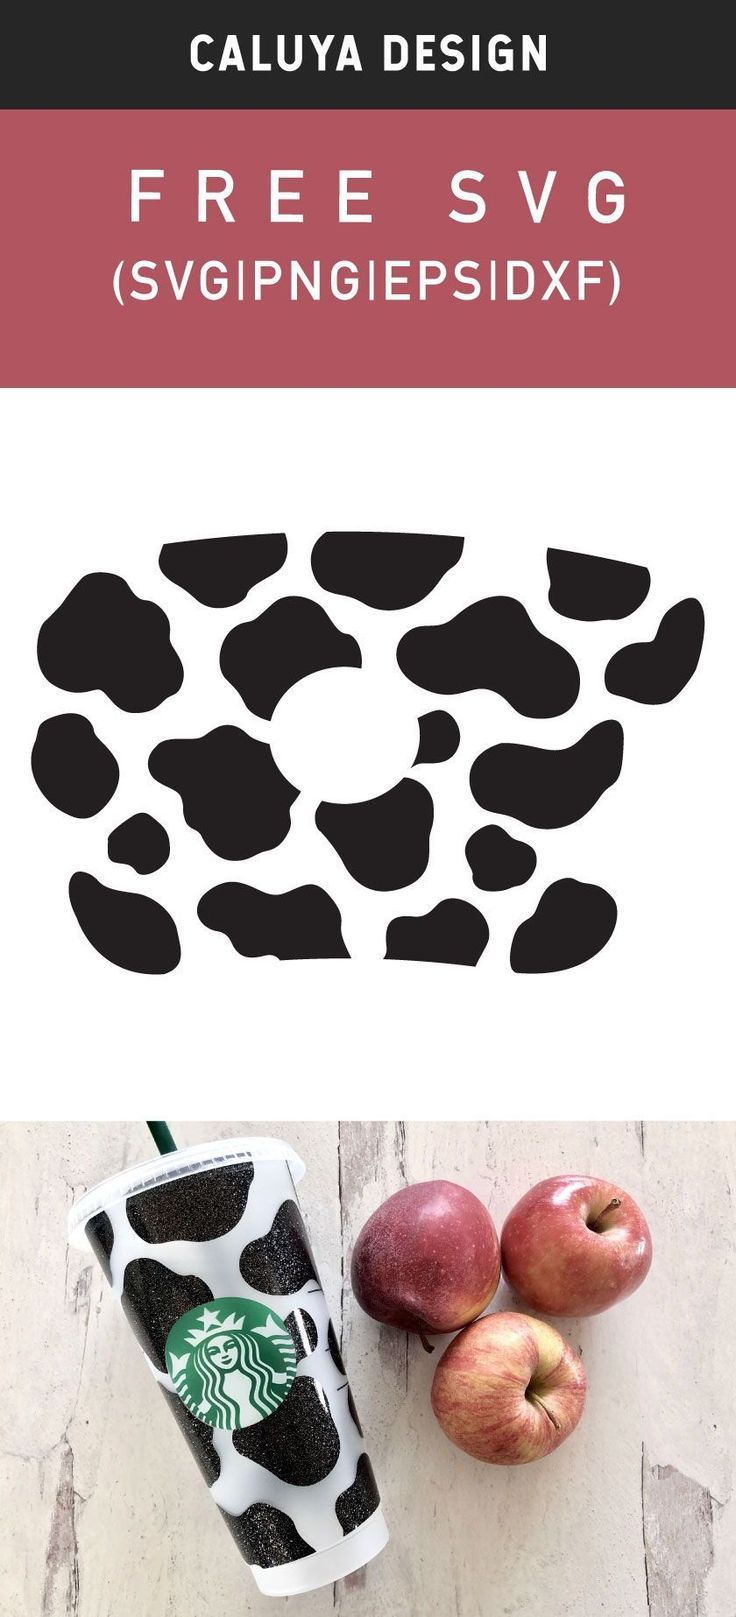 Free cow starbucks wrap svg png eps dxf by caluya